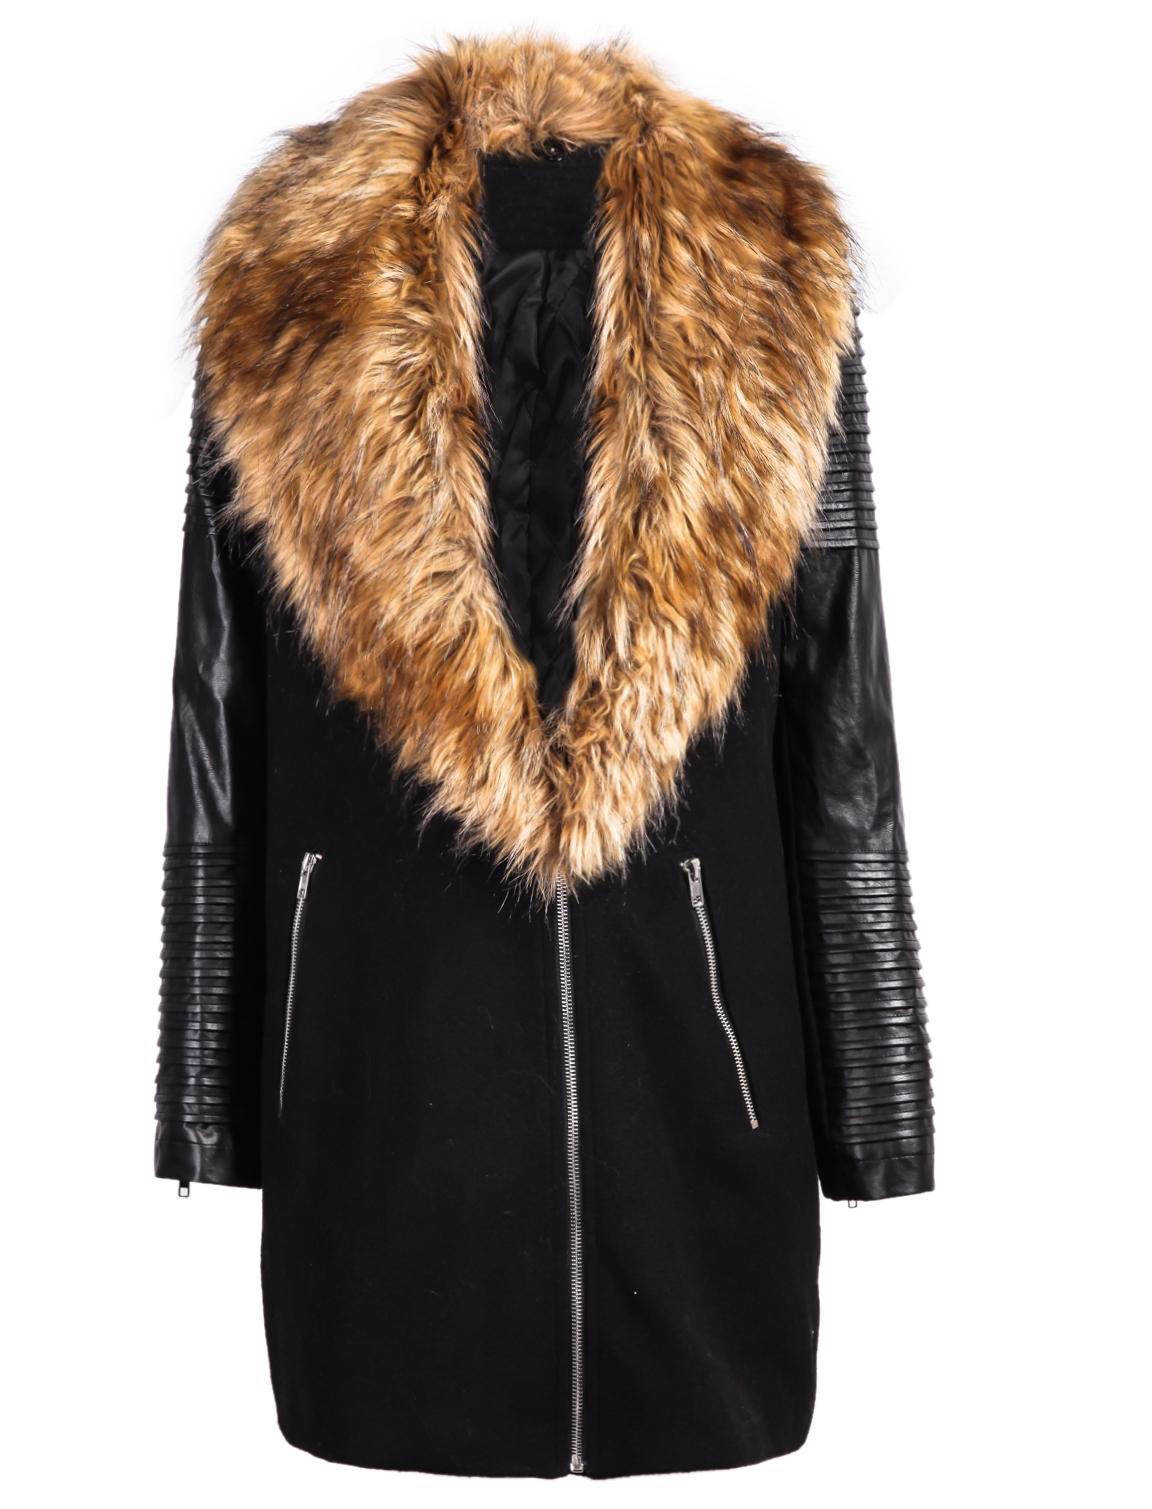 leather sleeves fur collar 137b91b959c6